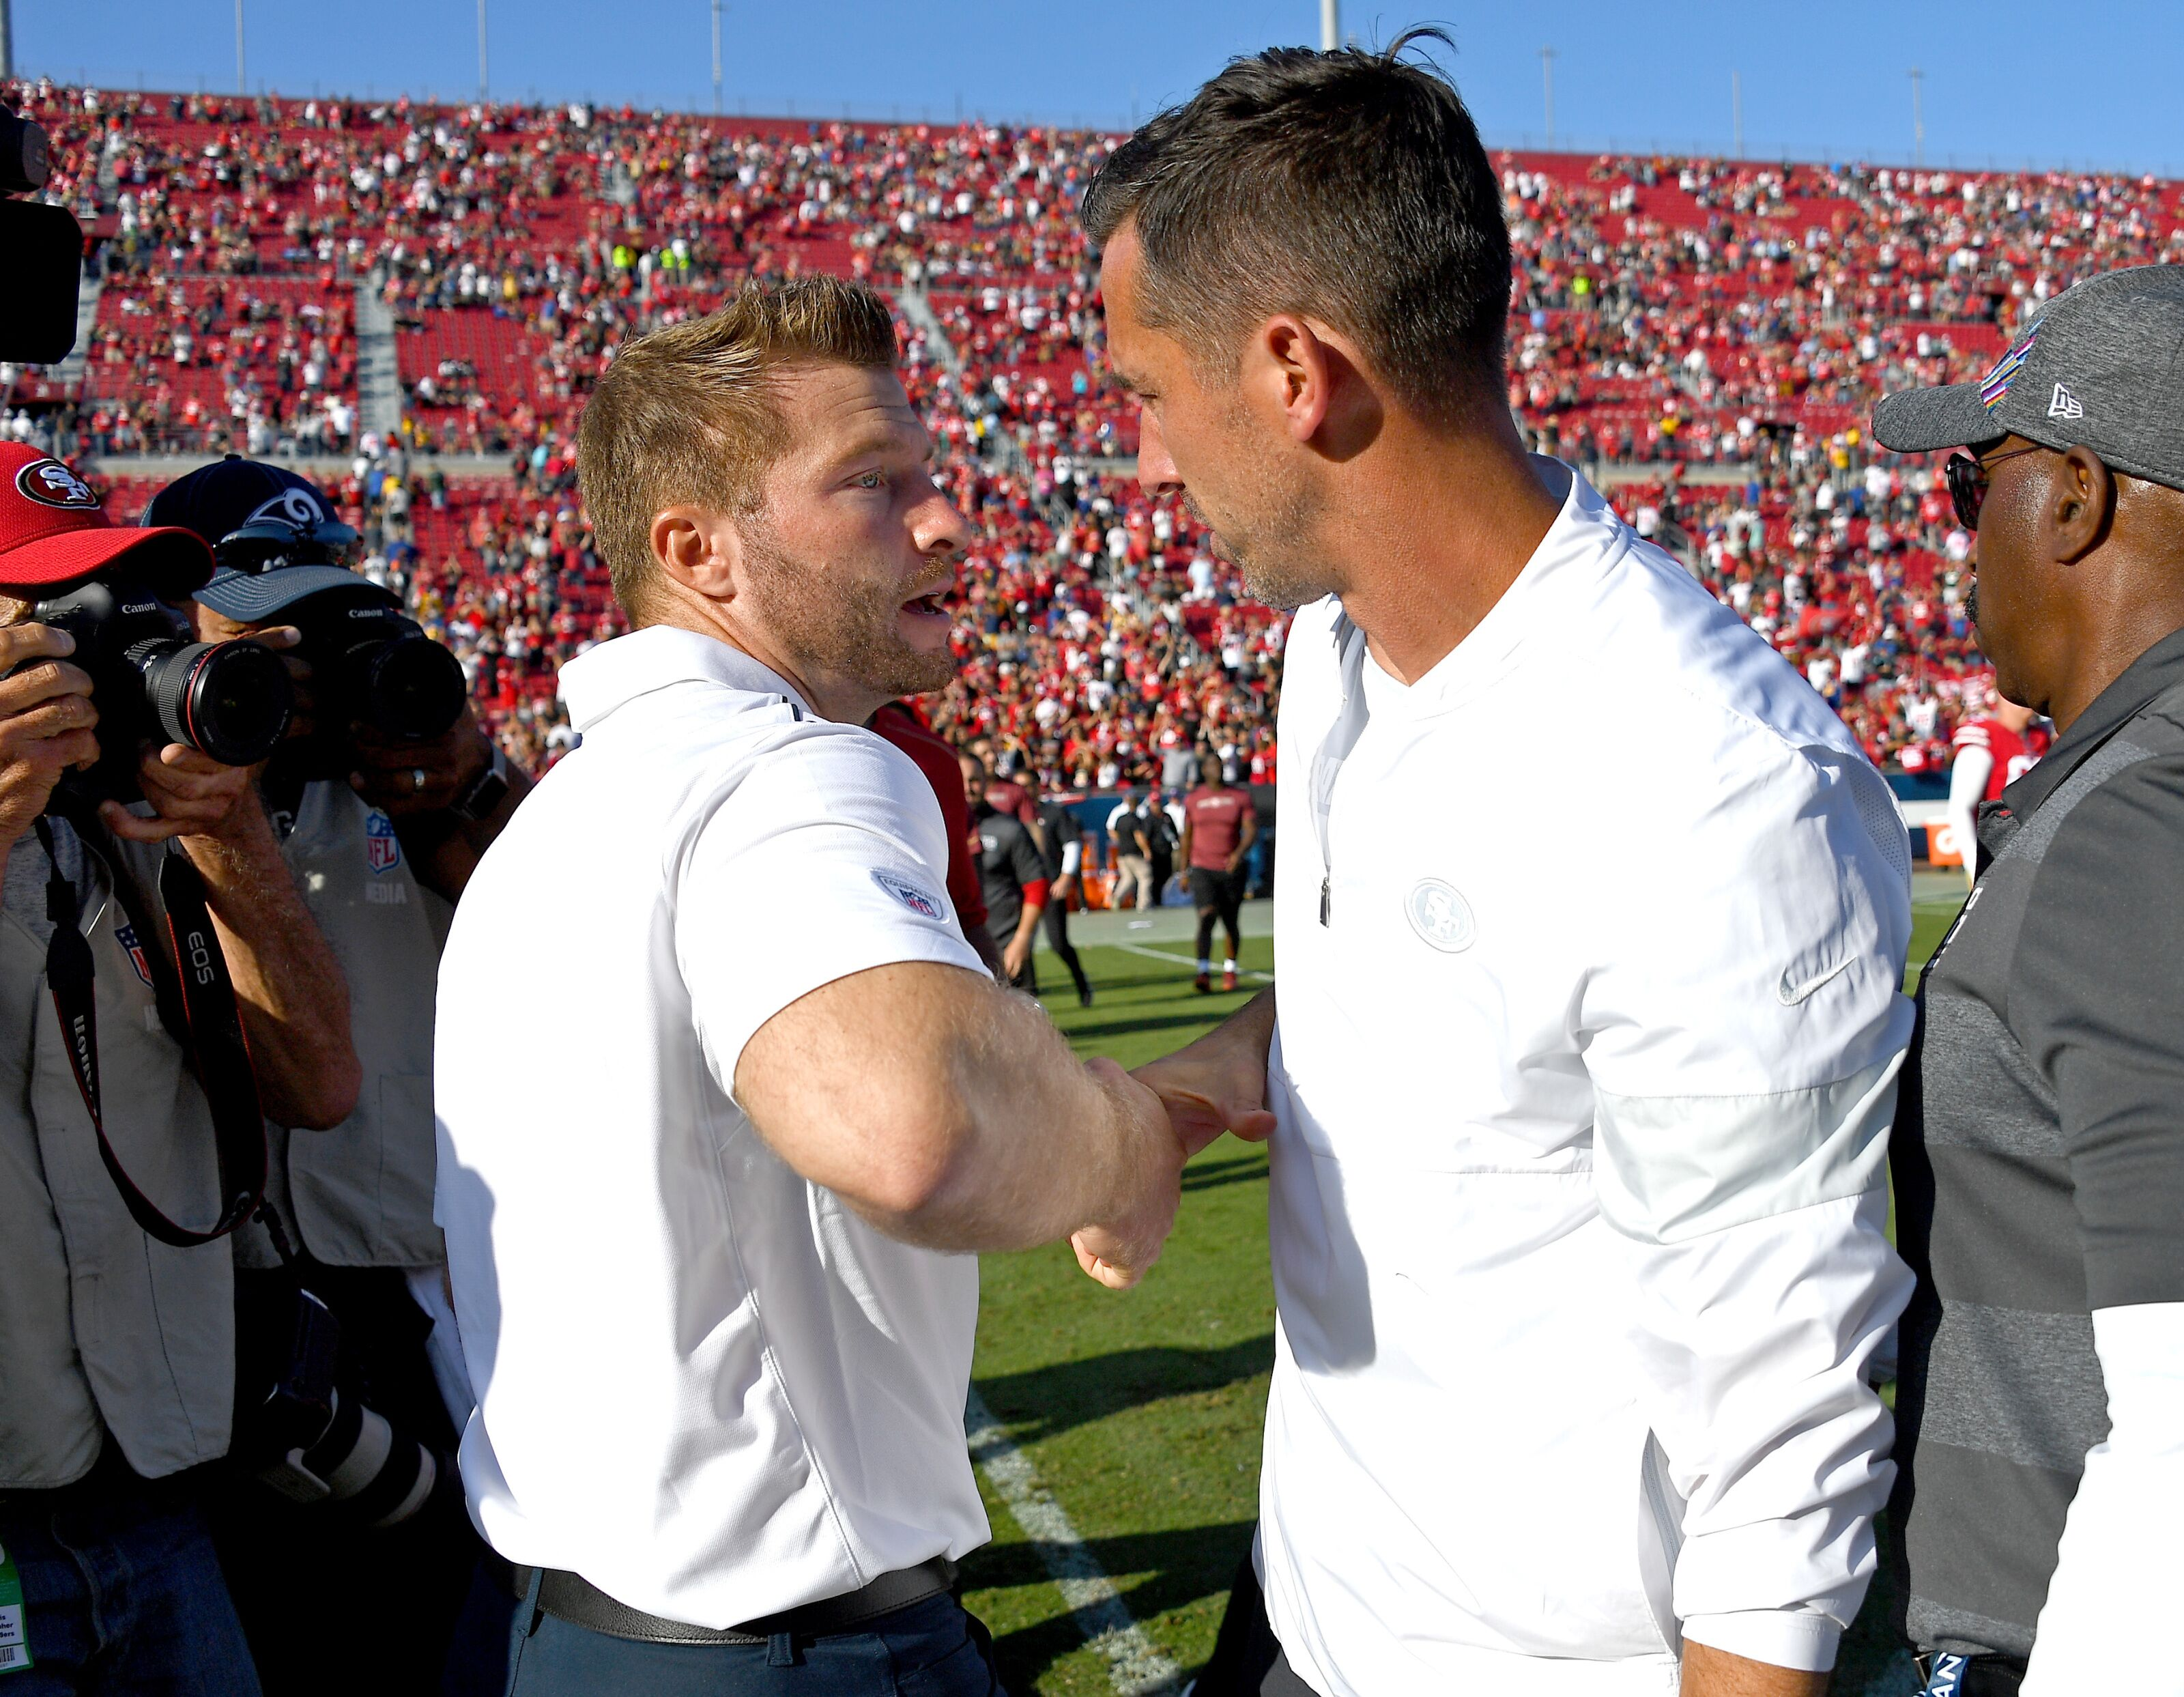 Sean McVay could receive hot seat treatment if losses continue piling up for Rams